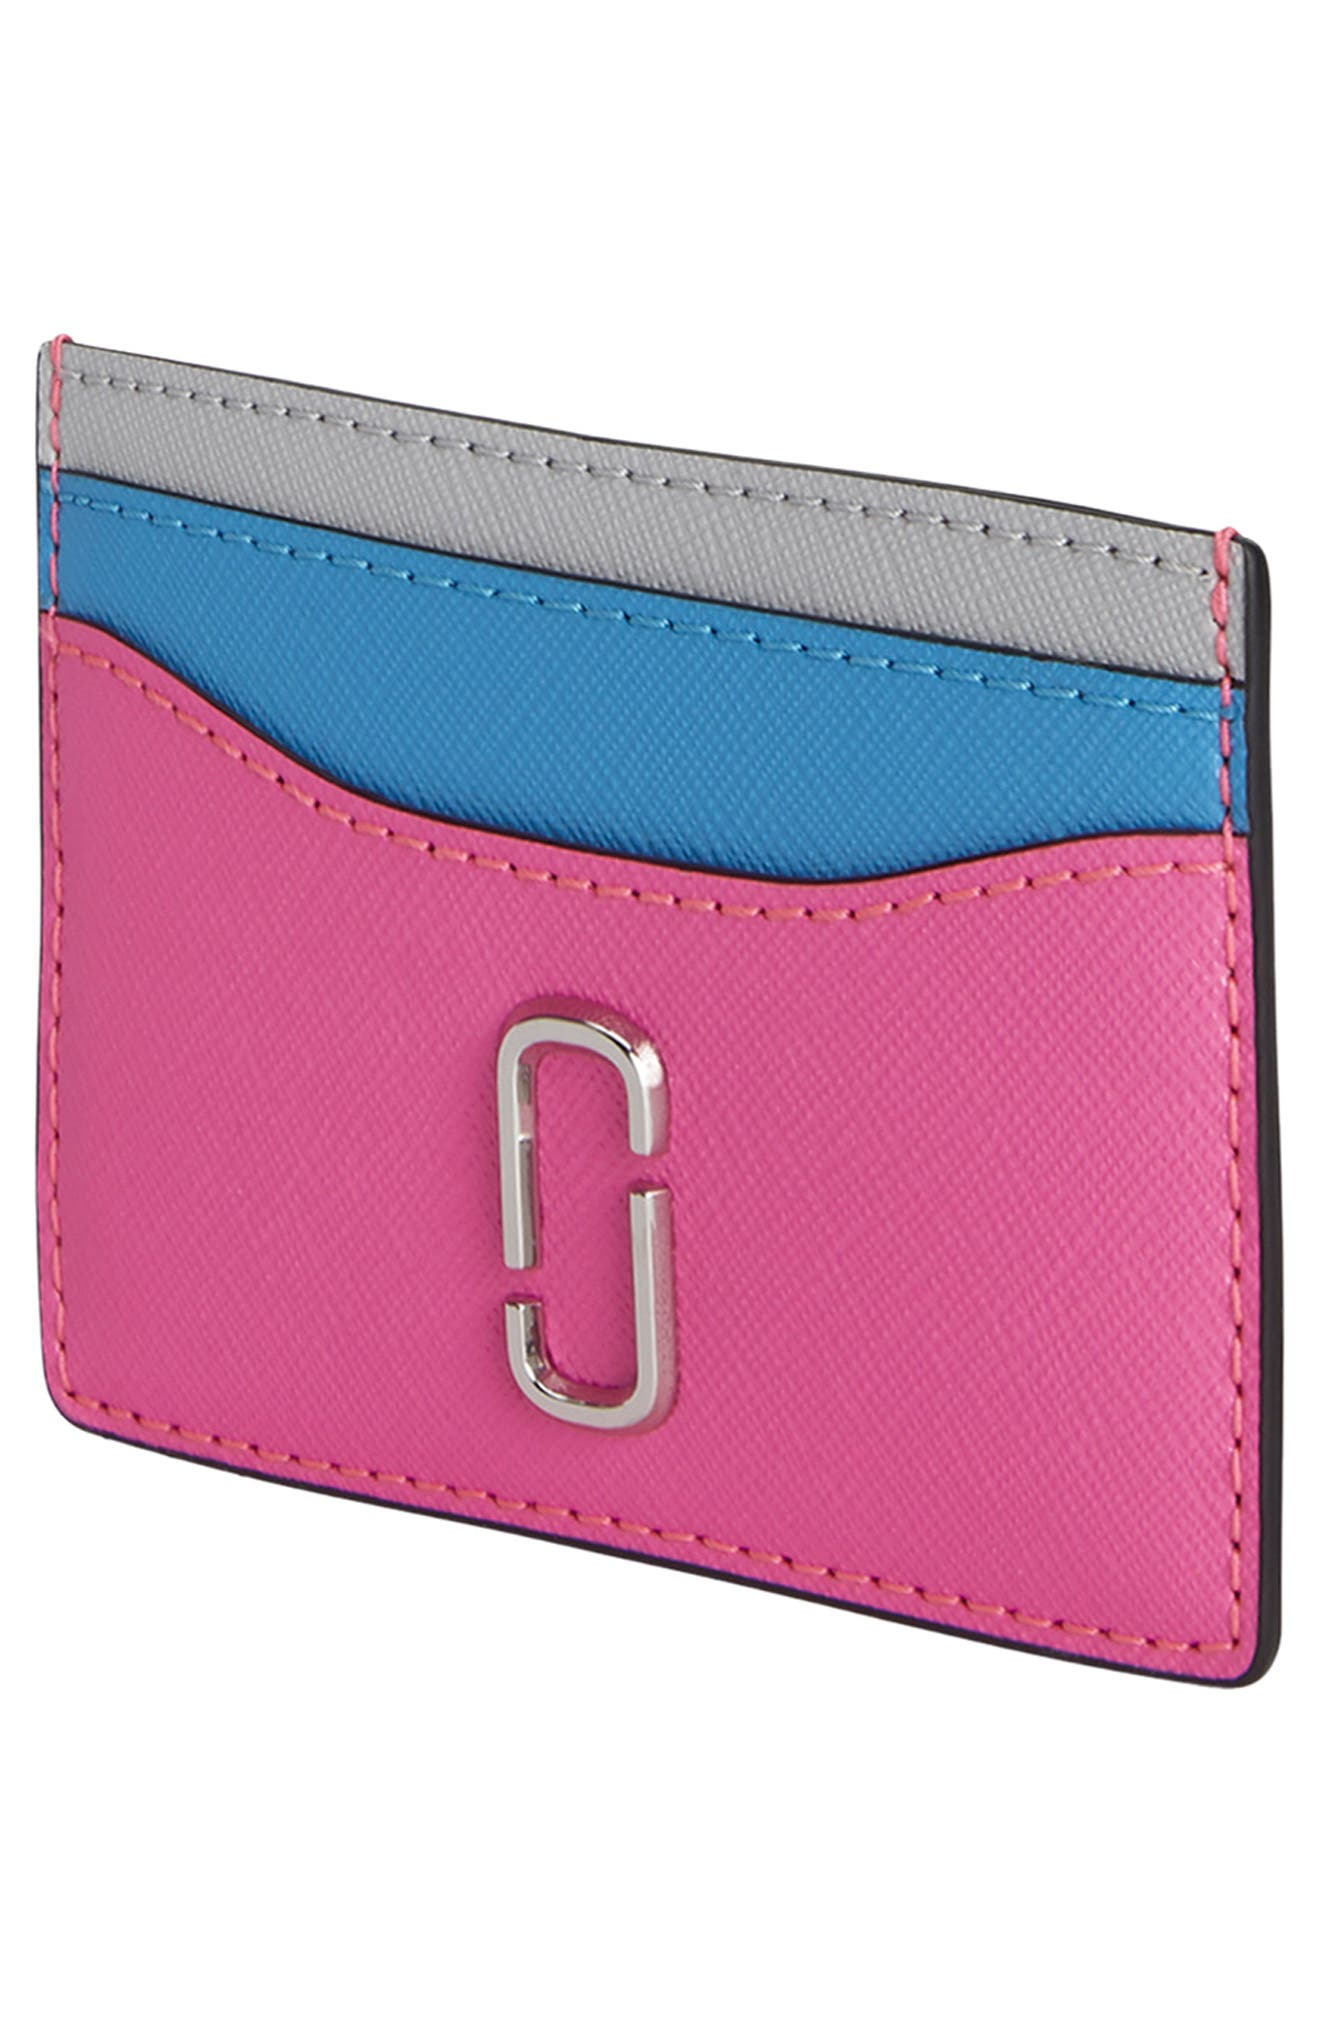 Snapshot Leather Card Case,                             Alternate thumbnail 3, color,                             BRIGHT PINK MULTI